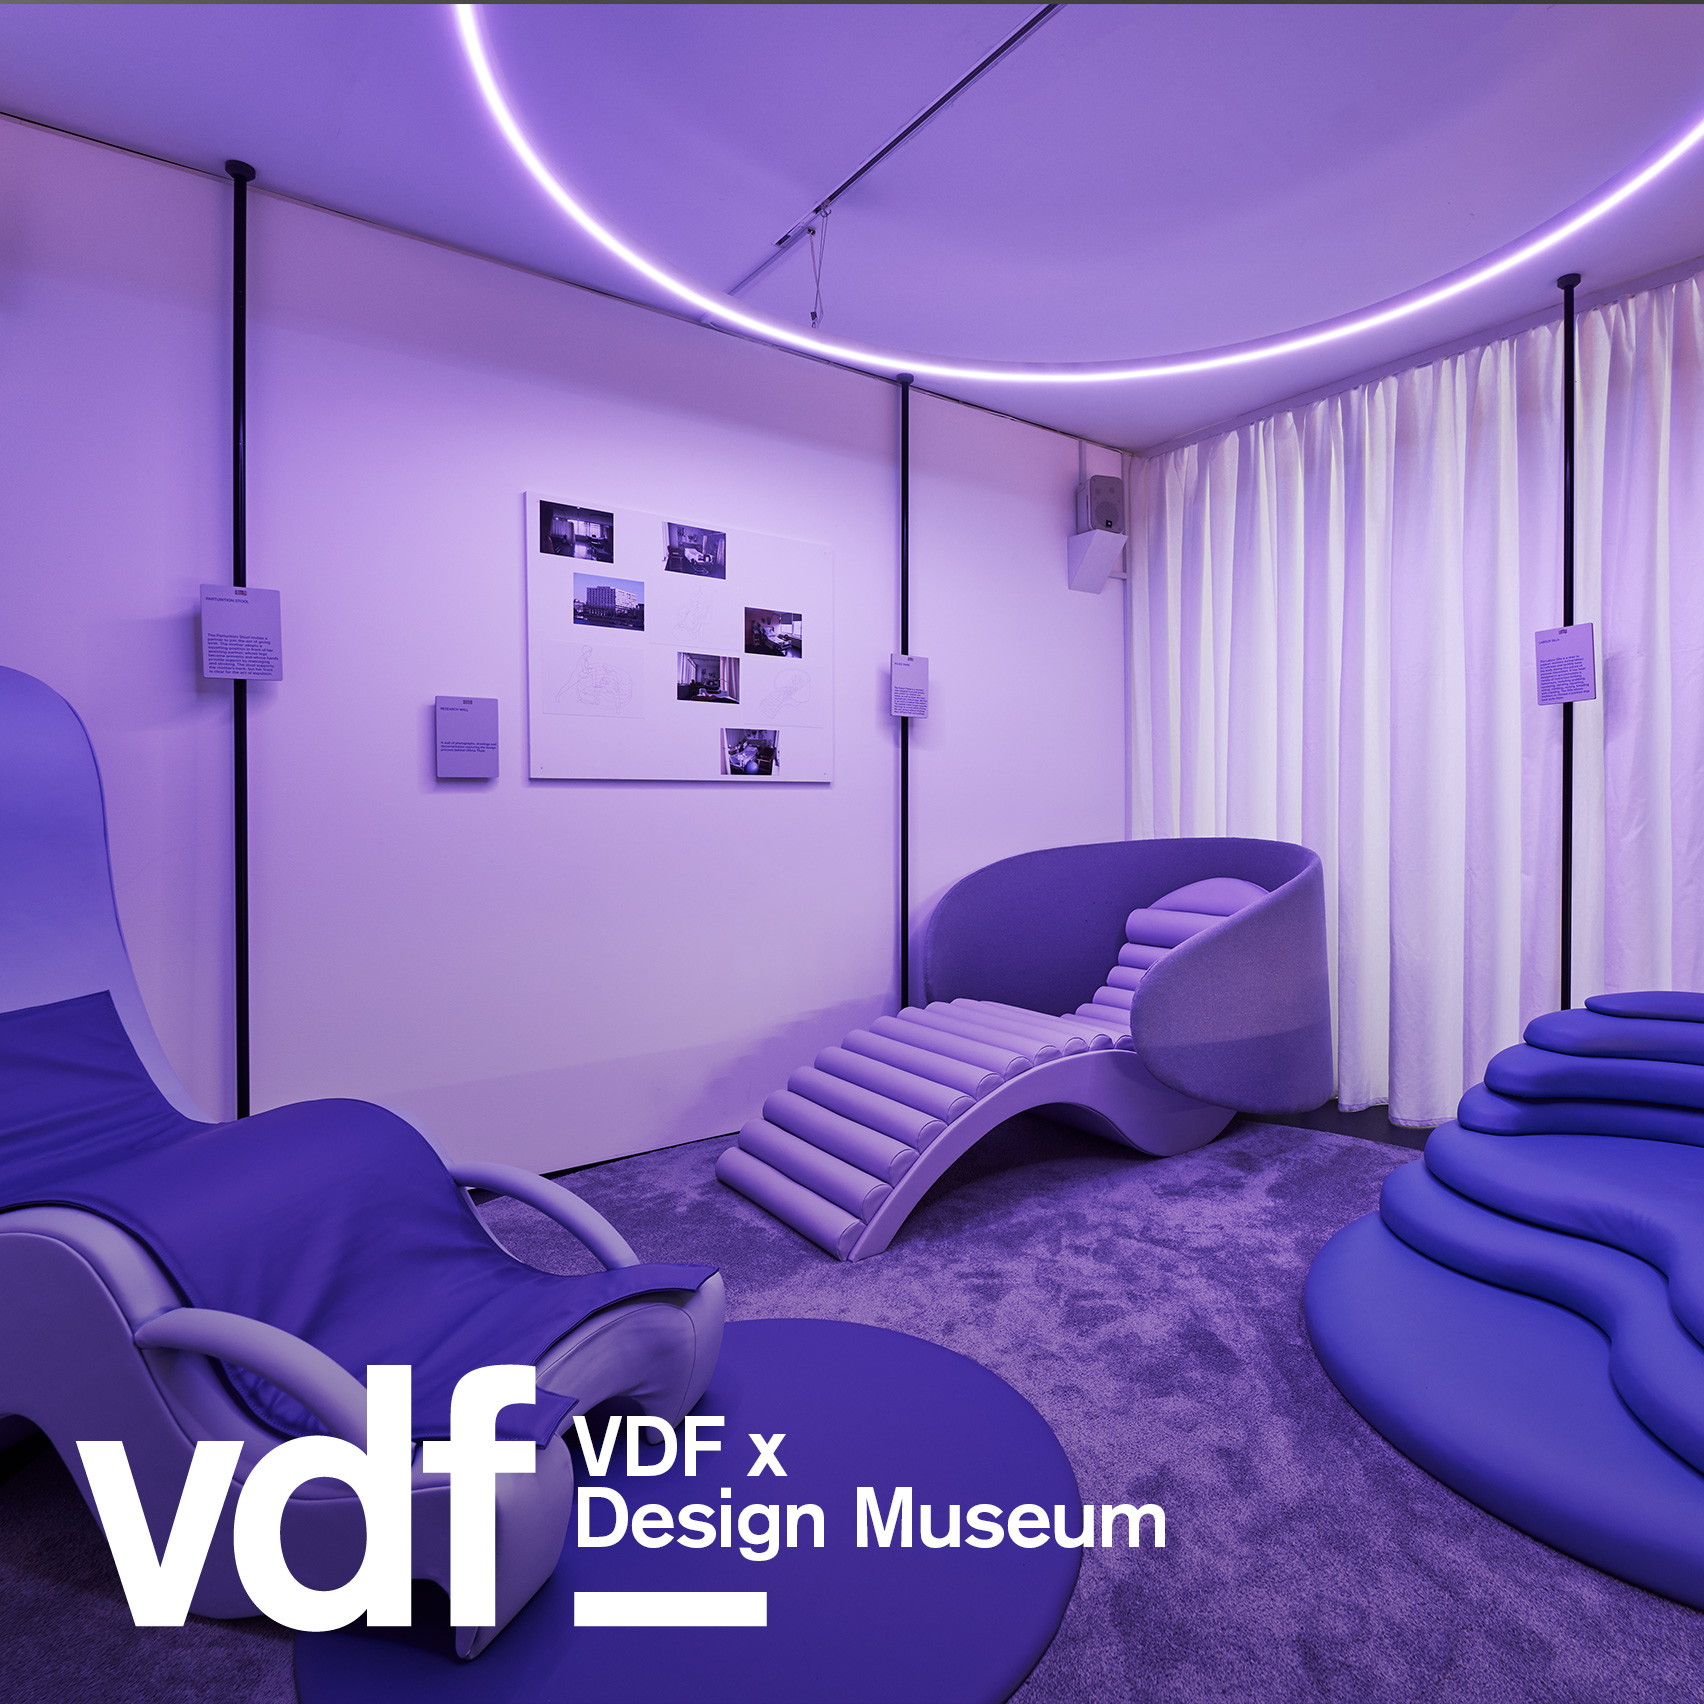 This week's VDF highlights include Serpentine Gallery and Kvadrat